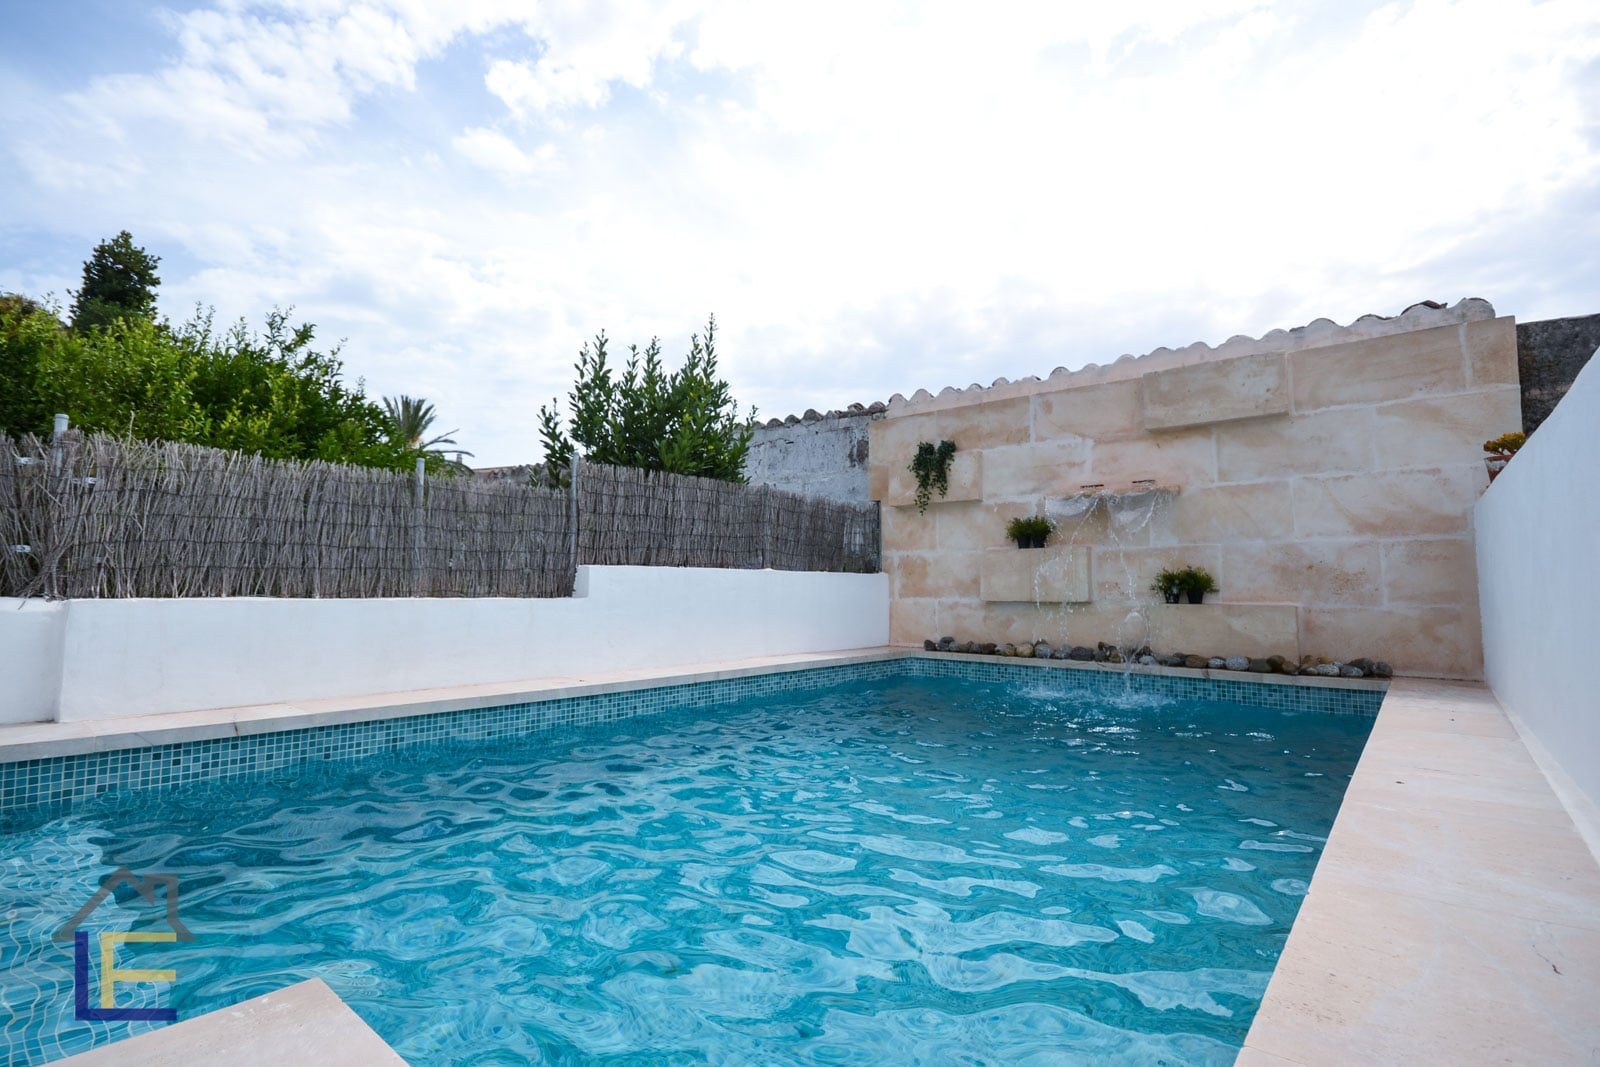 Renovated house with pool in the inner courtyard in Felanitx